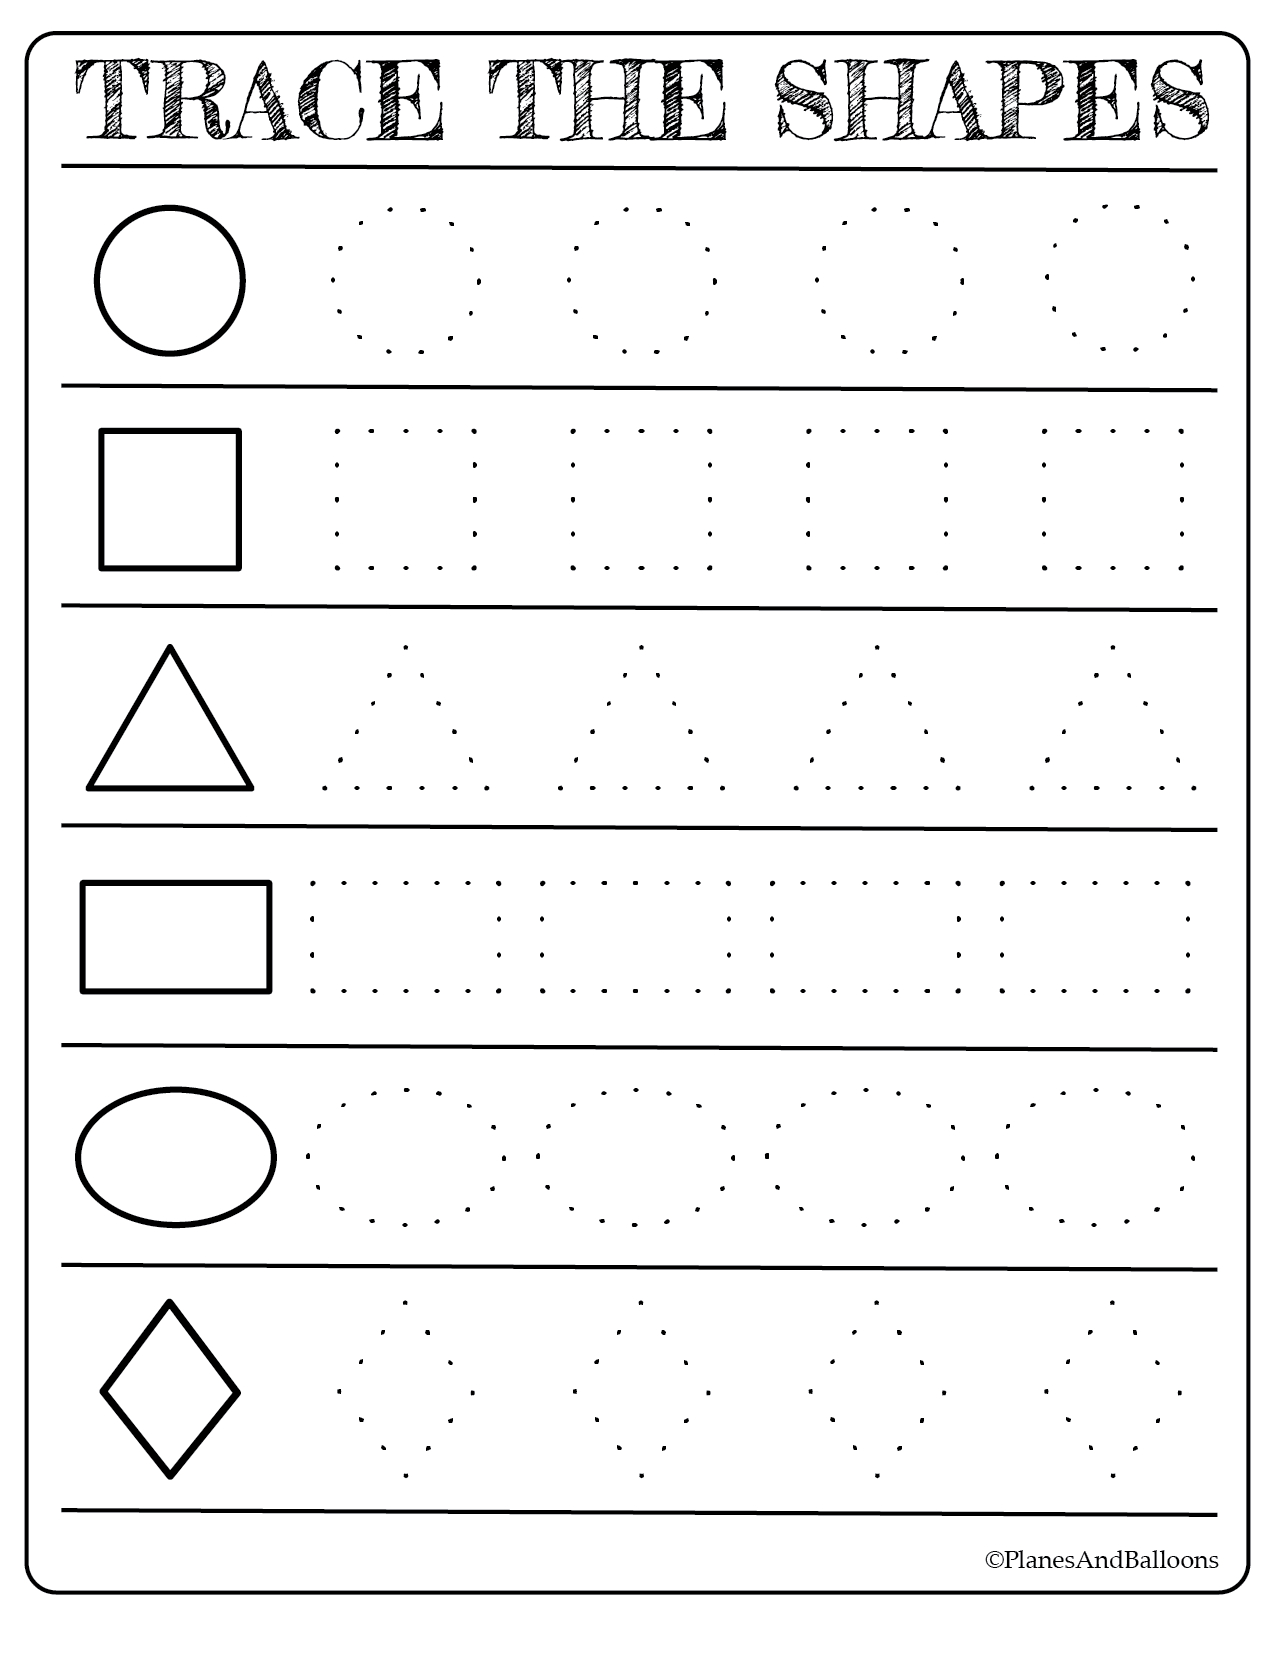 Free Printable Shapes Worksheets For Toddlers And Preschoolers - Toddler Learning Activities Printable Free